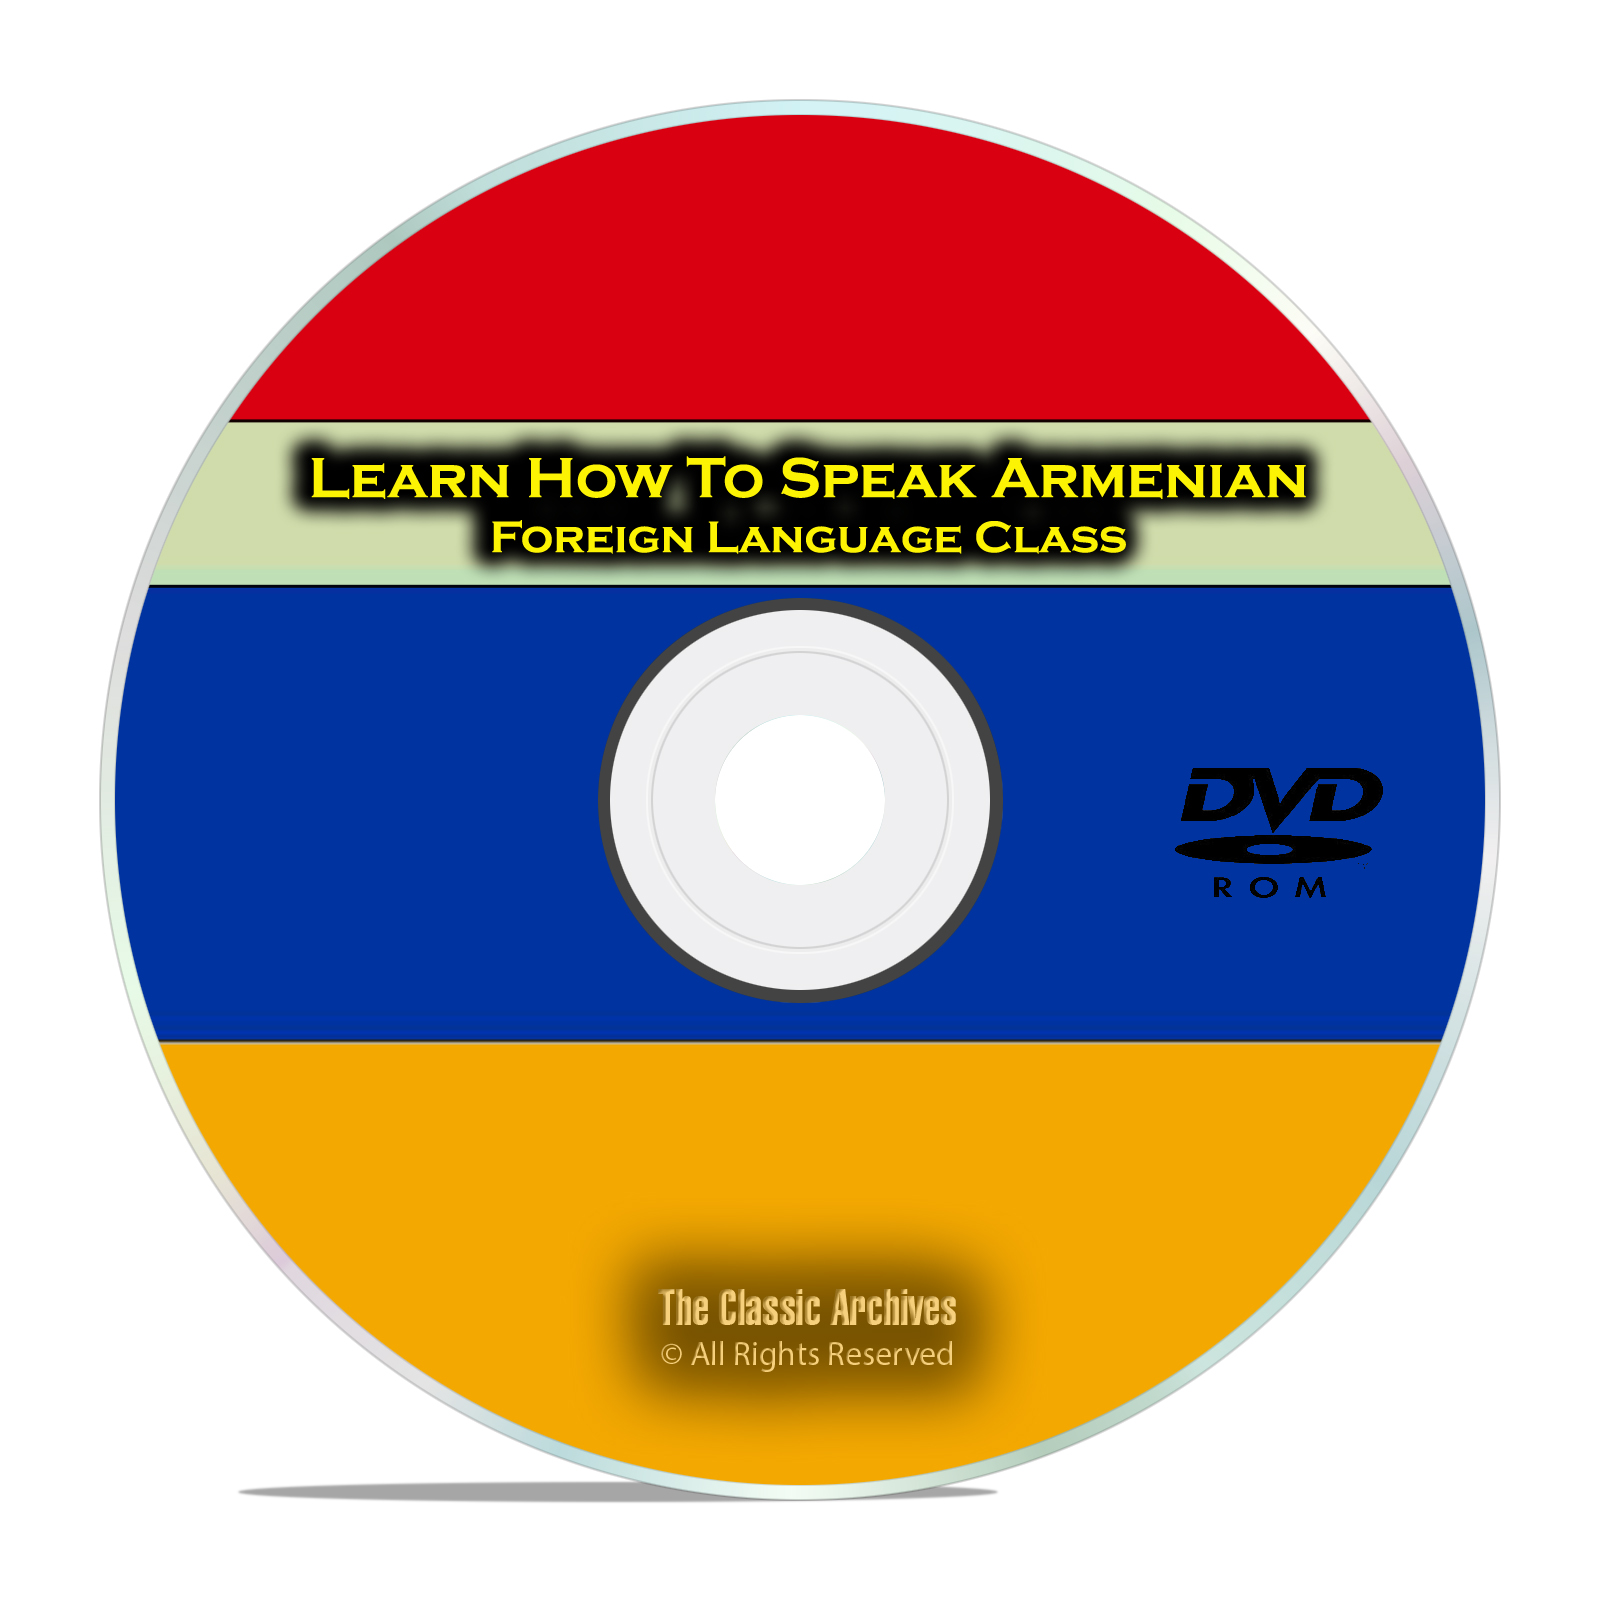 Learn How To Speak Armenian, Fast Easy Foreign Language Training Course DVD